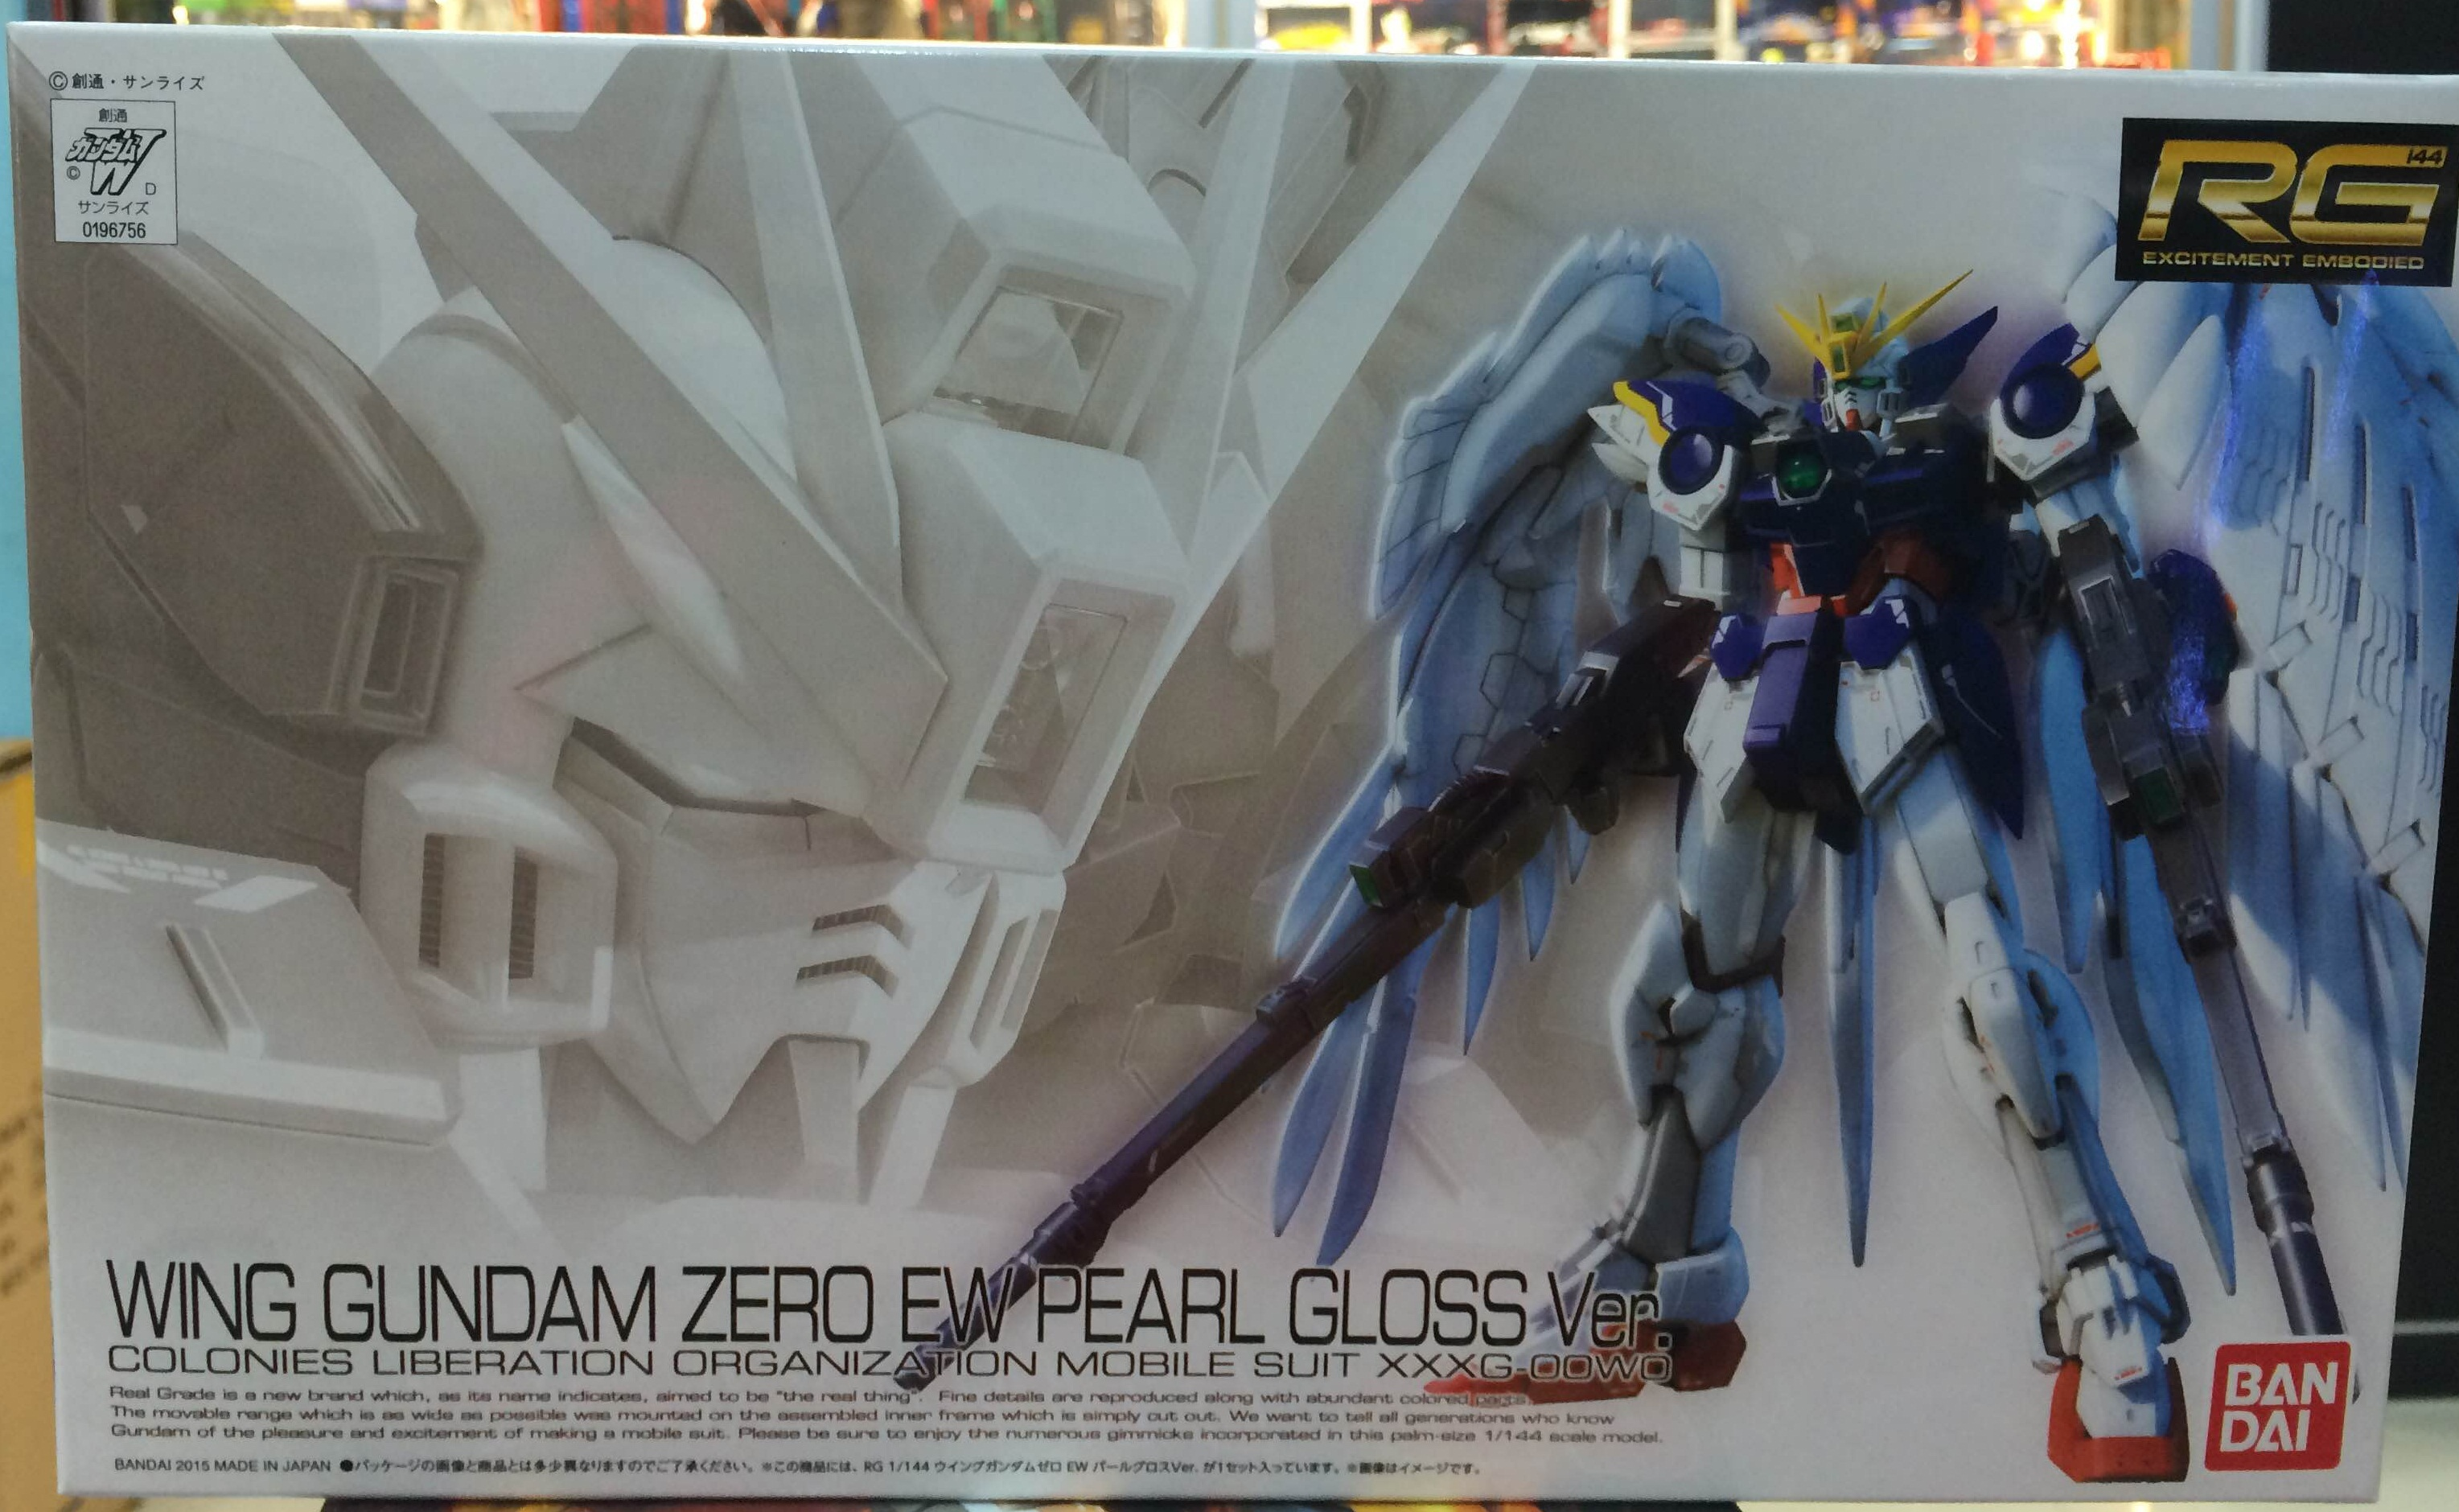 WING GUNDAM ZERO EW PEARL GLOSS Ver. Limited Edition